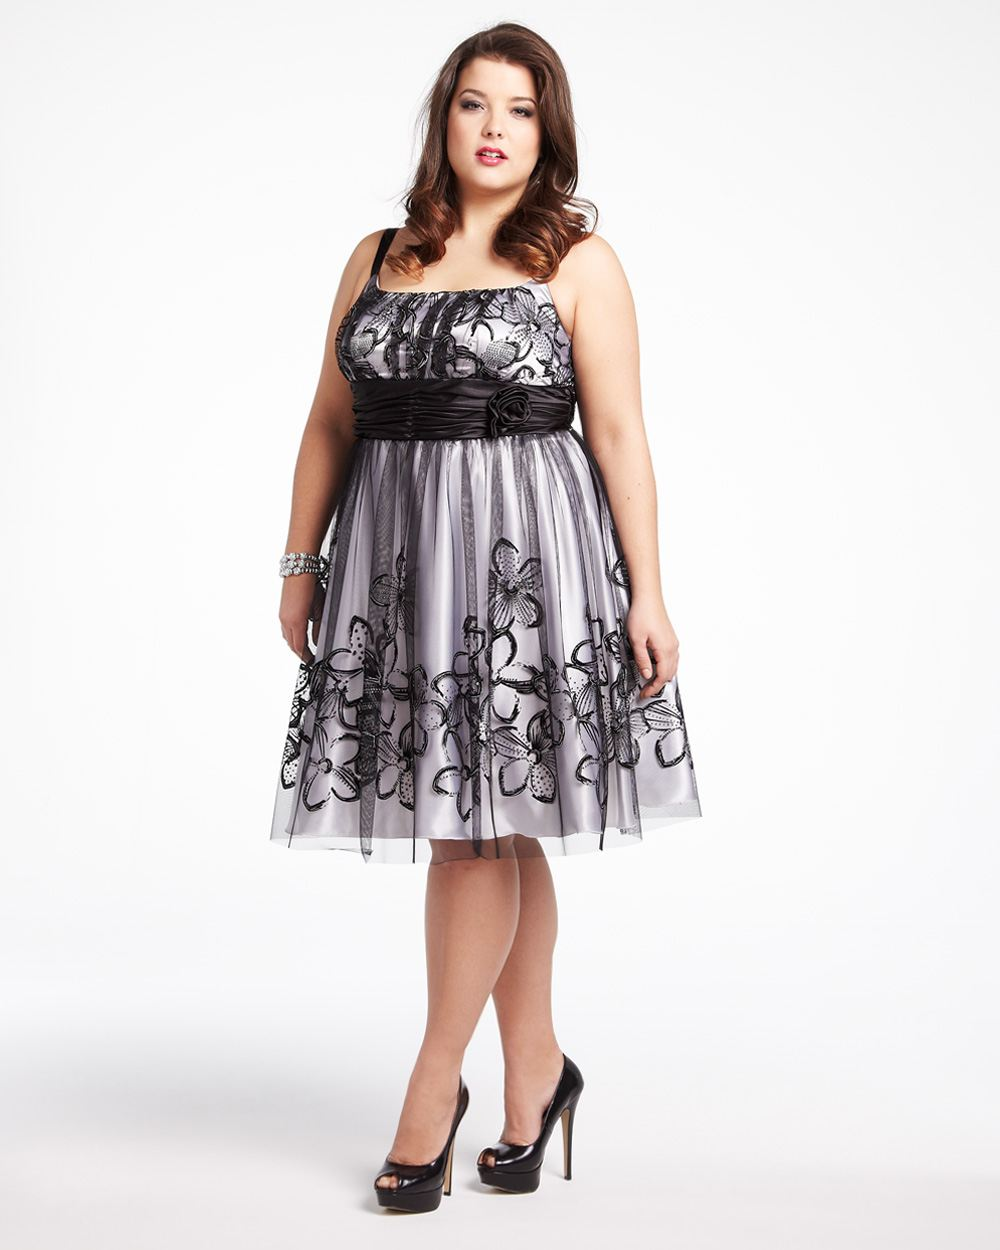 Dresses for plus size women flattering dresses for plus size women AKWRTEY